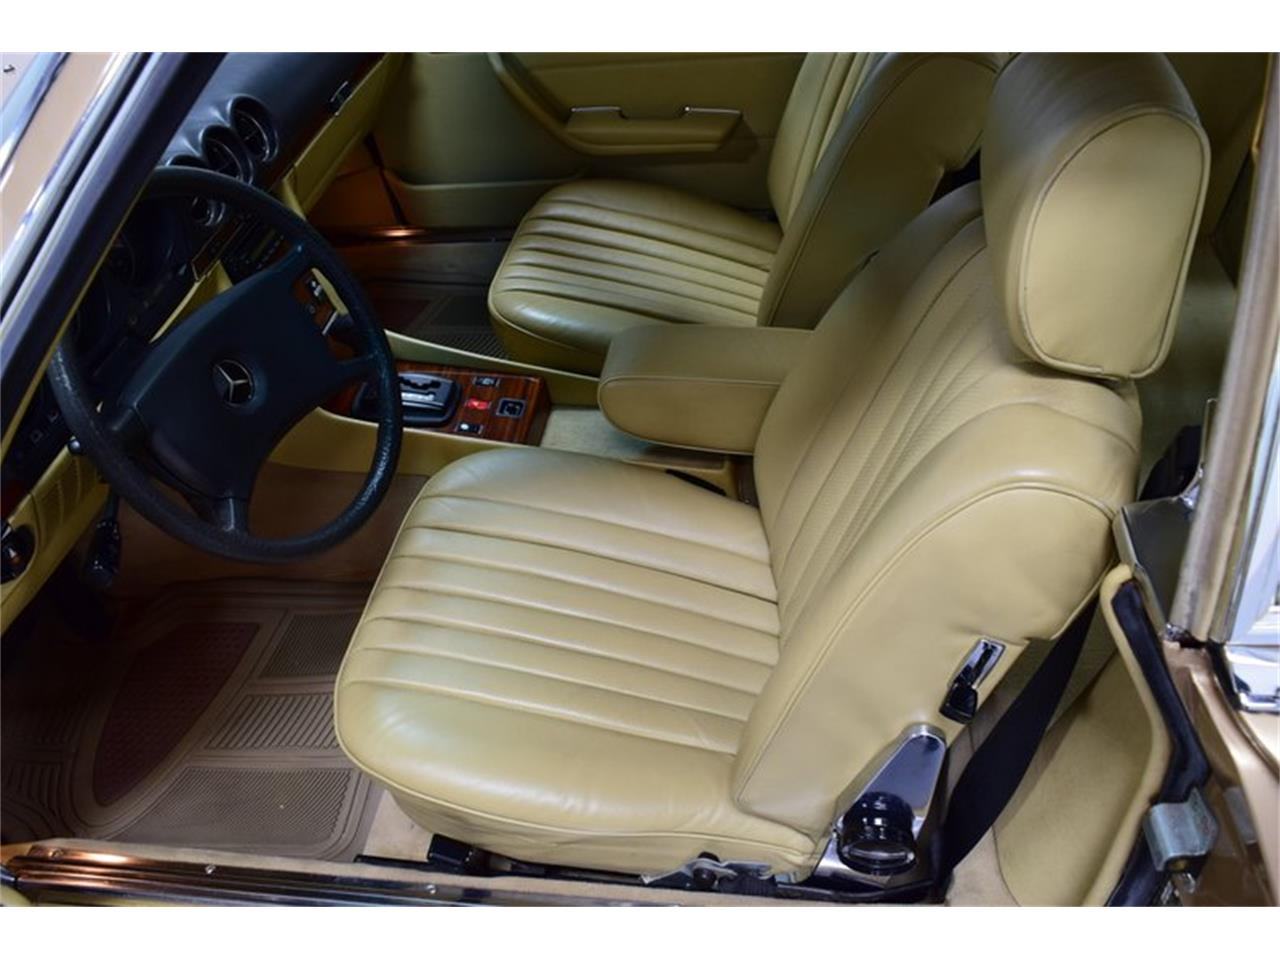 1983 Mercedes-Benz 380 for sale in Mooresville, NC – photo 35